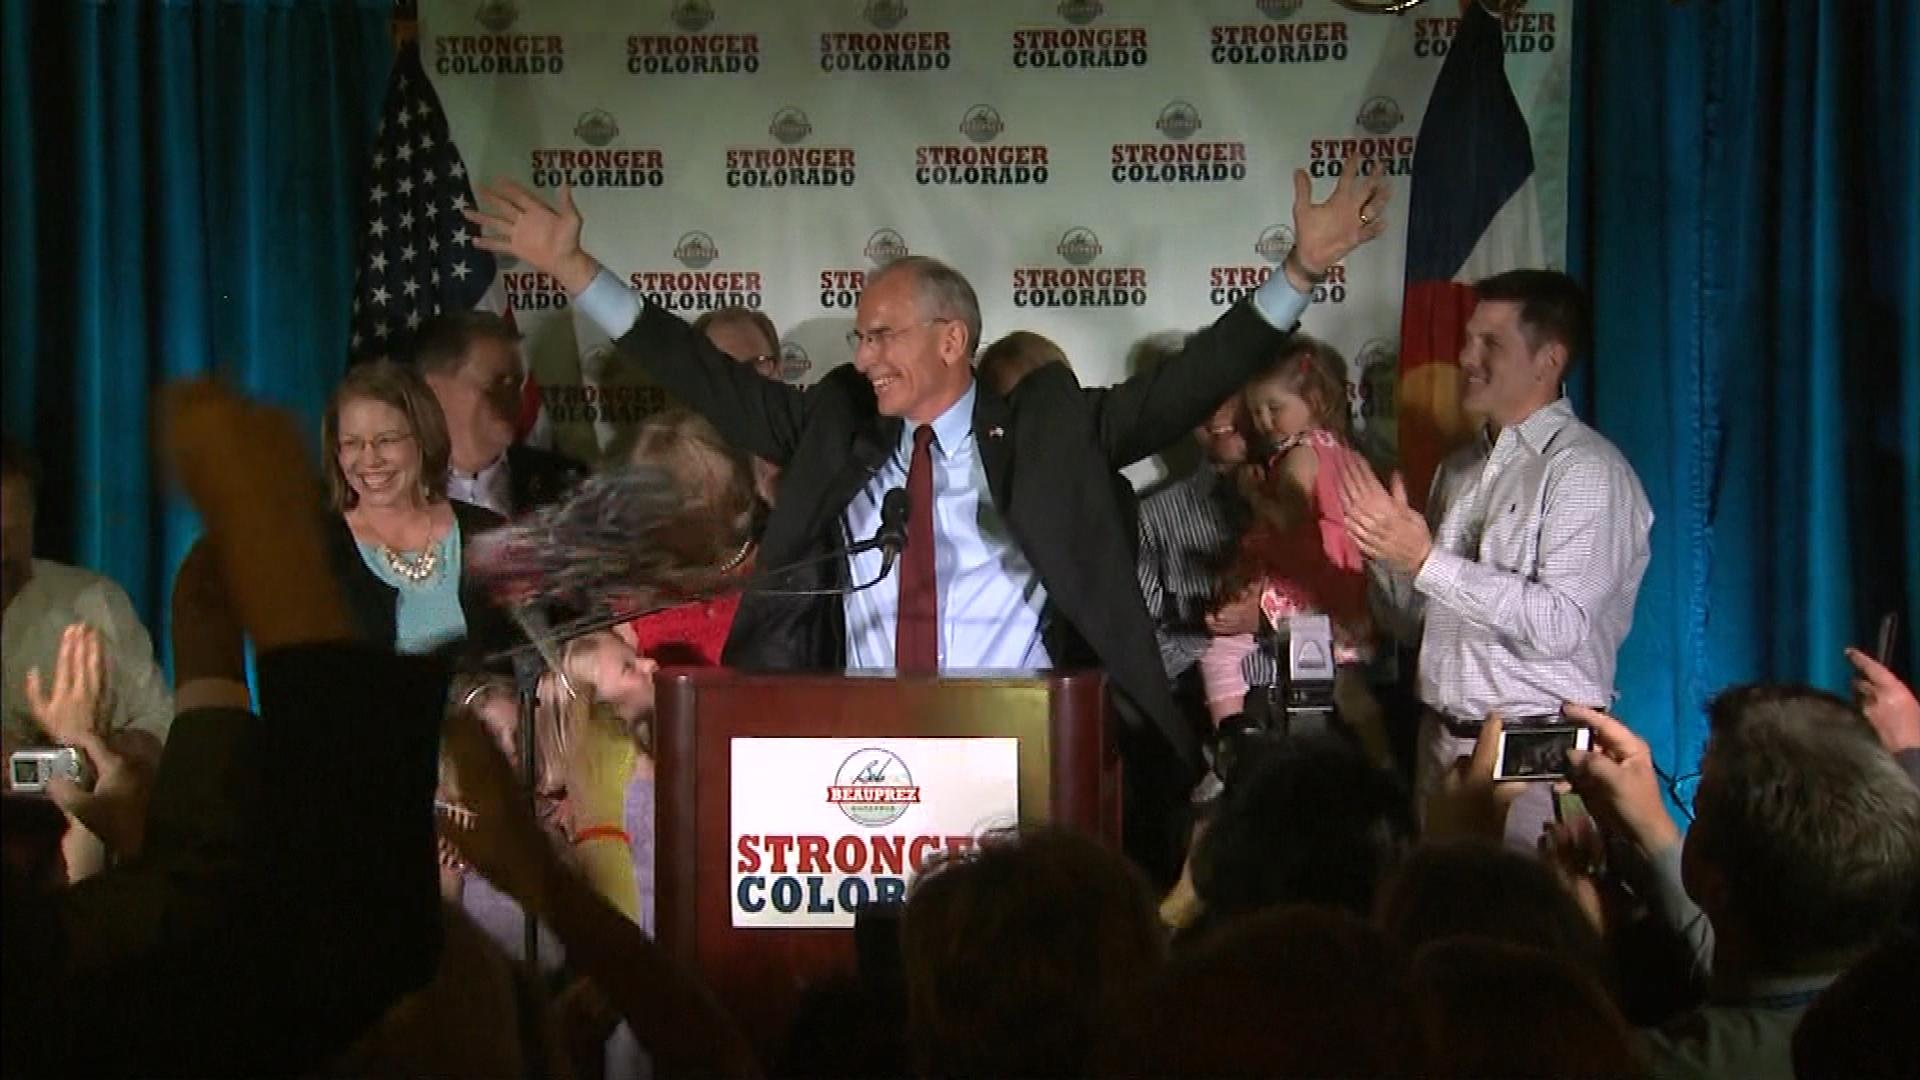 Bob Beauprez celebrates his win on Tuesday. (credit: CBS)